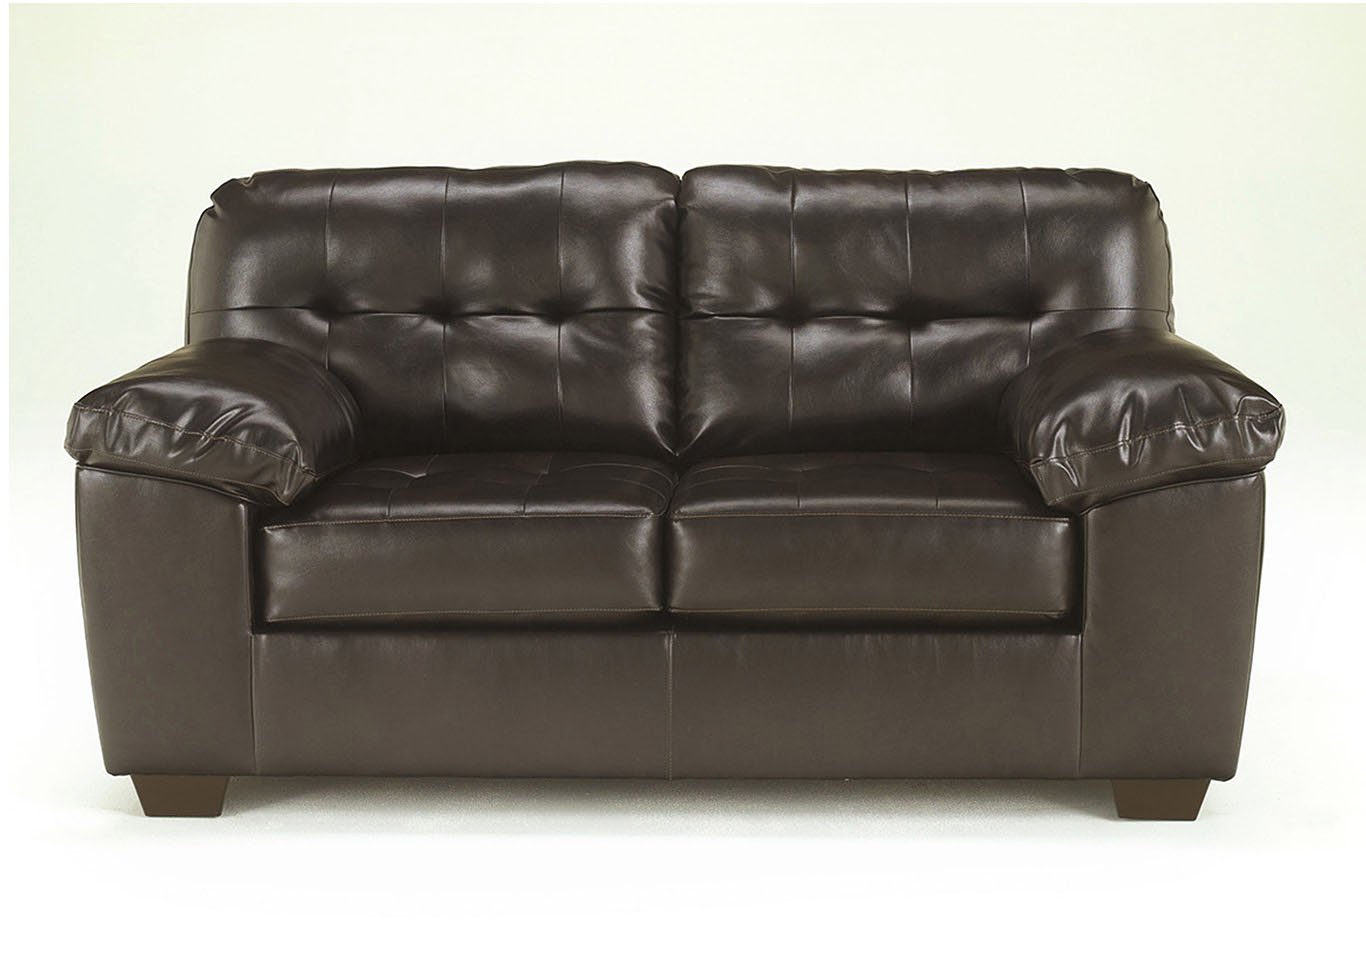 Alliston DuraBlend Chocolate Loveseat,ABF Signature Design by Ashley